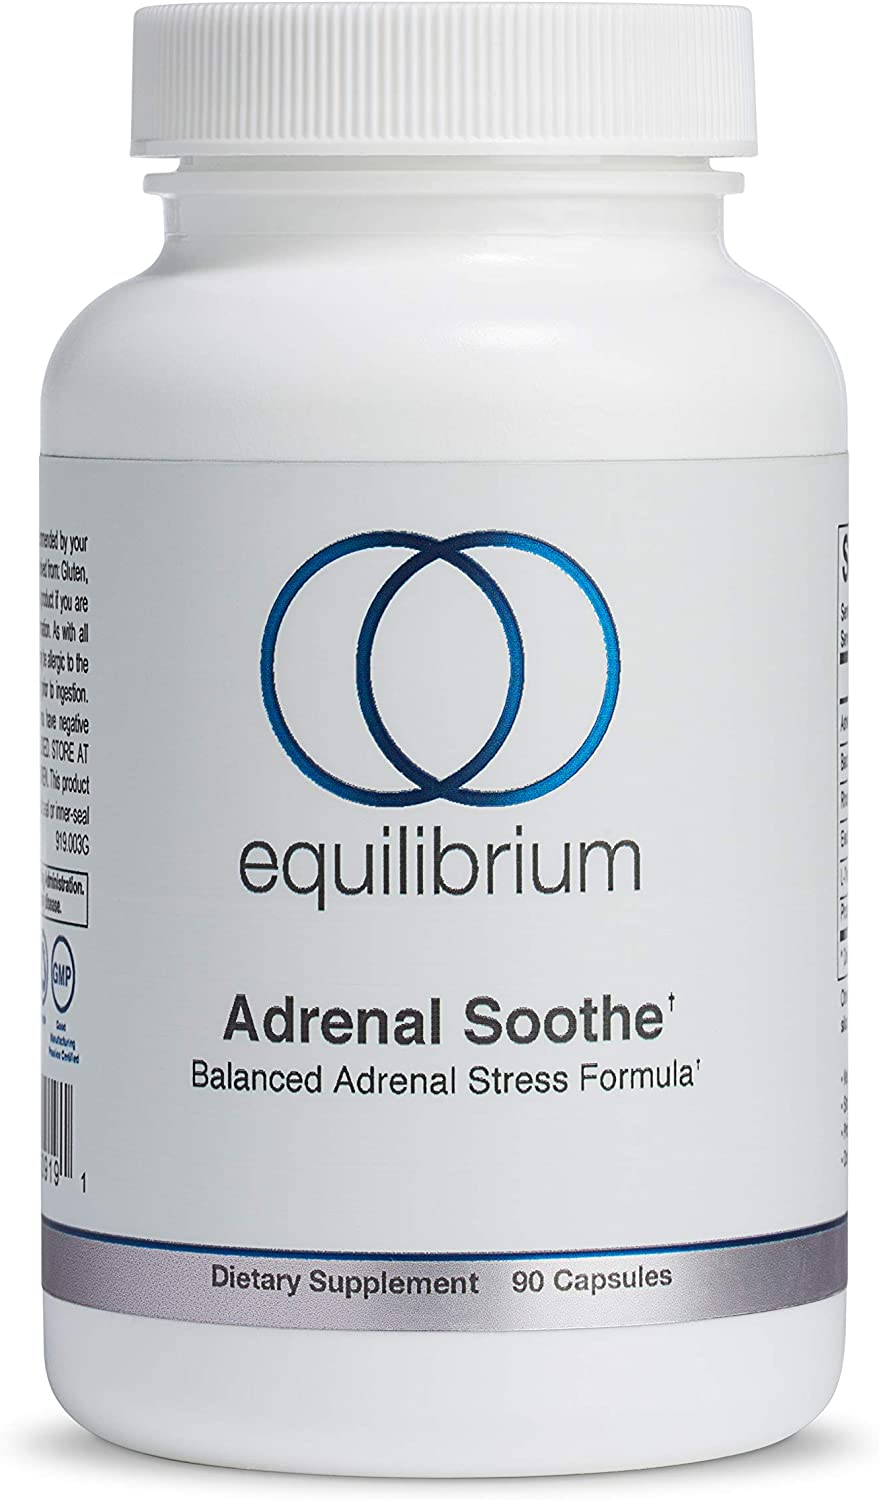 Adrenal Soothe   Stress and Anxiety Relief   Improves Mood, Panic Attack Relief, Relaxation   Ashwagandha, Rhodiola Rosea, L-Theanine   Herbal Adrenal Support, 90 caps   Equilibrium Nutrition